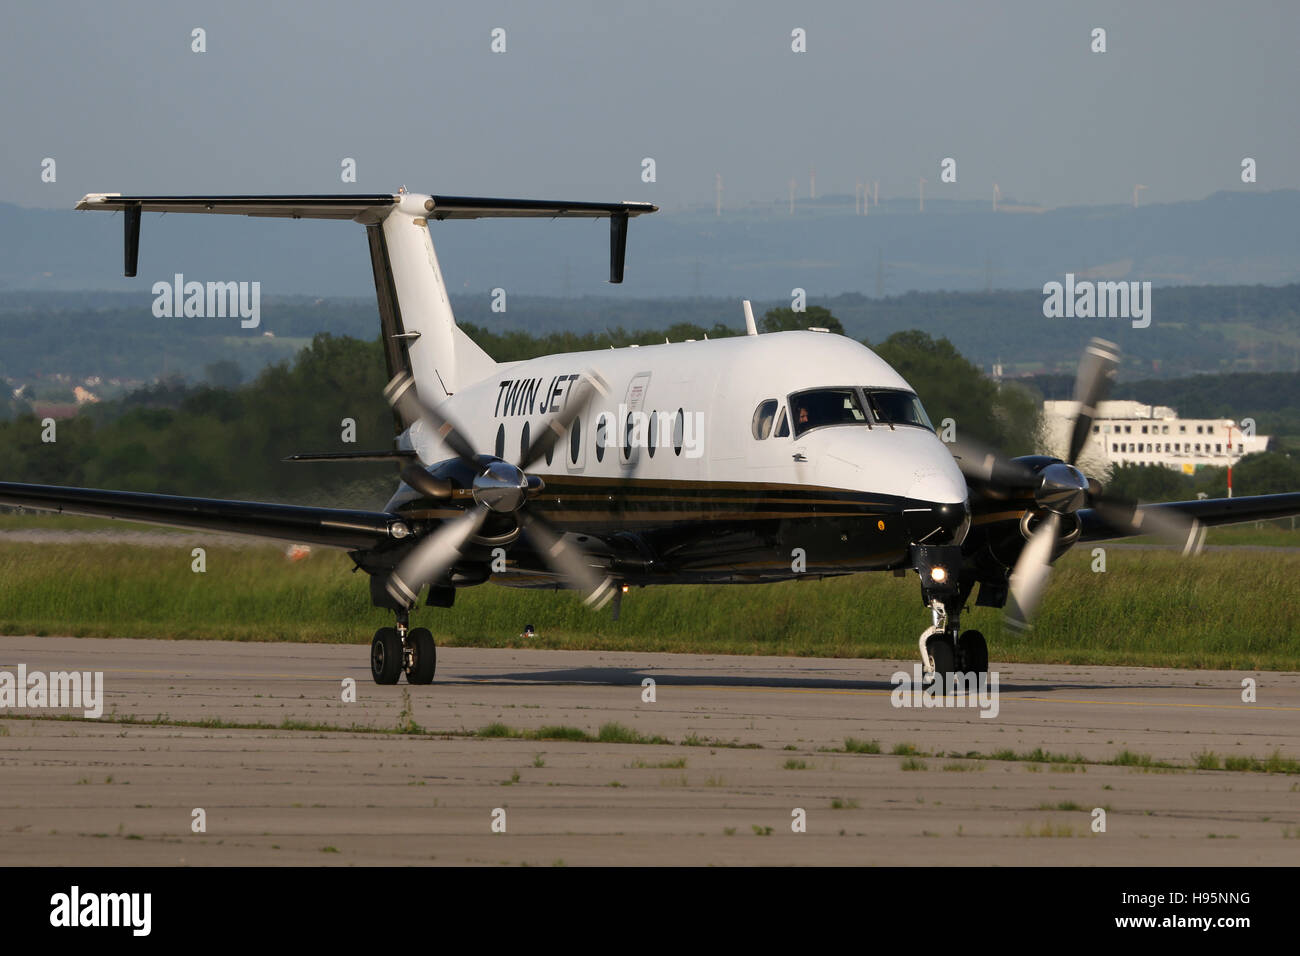 Stuttgart, Germany – May 26, 2016: Twin Jet, Beech 1900D Airliner, at Stuttgart Airport - Stock Image